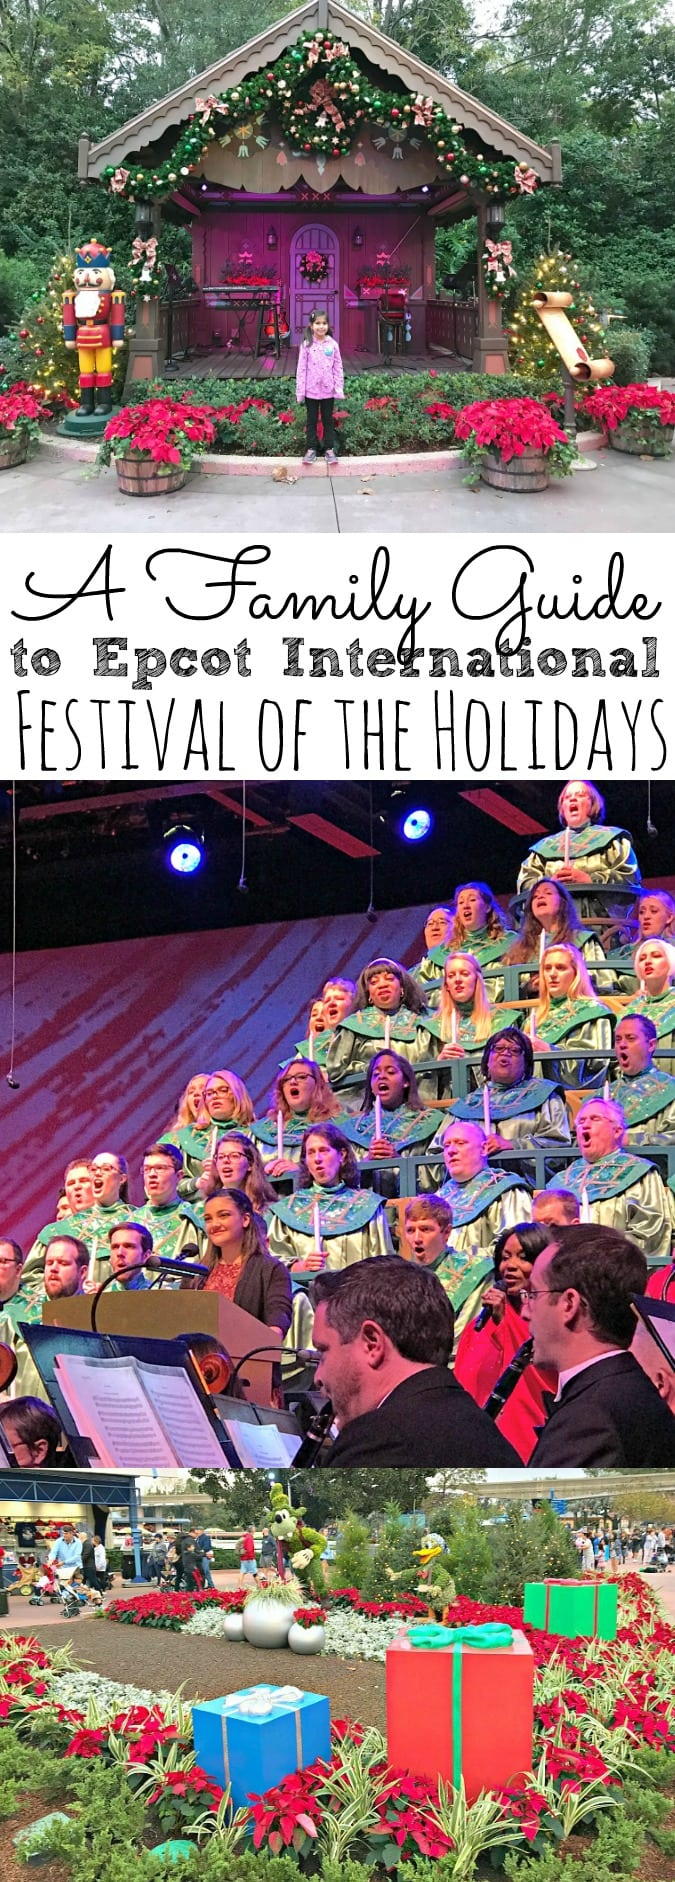 Epcot International Festival of theh Holidays